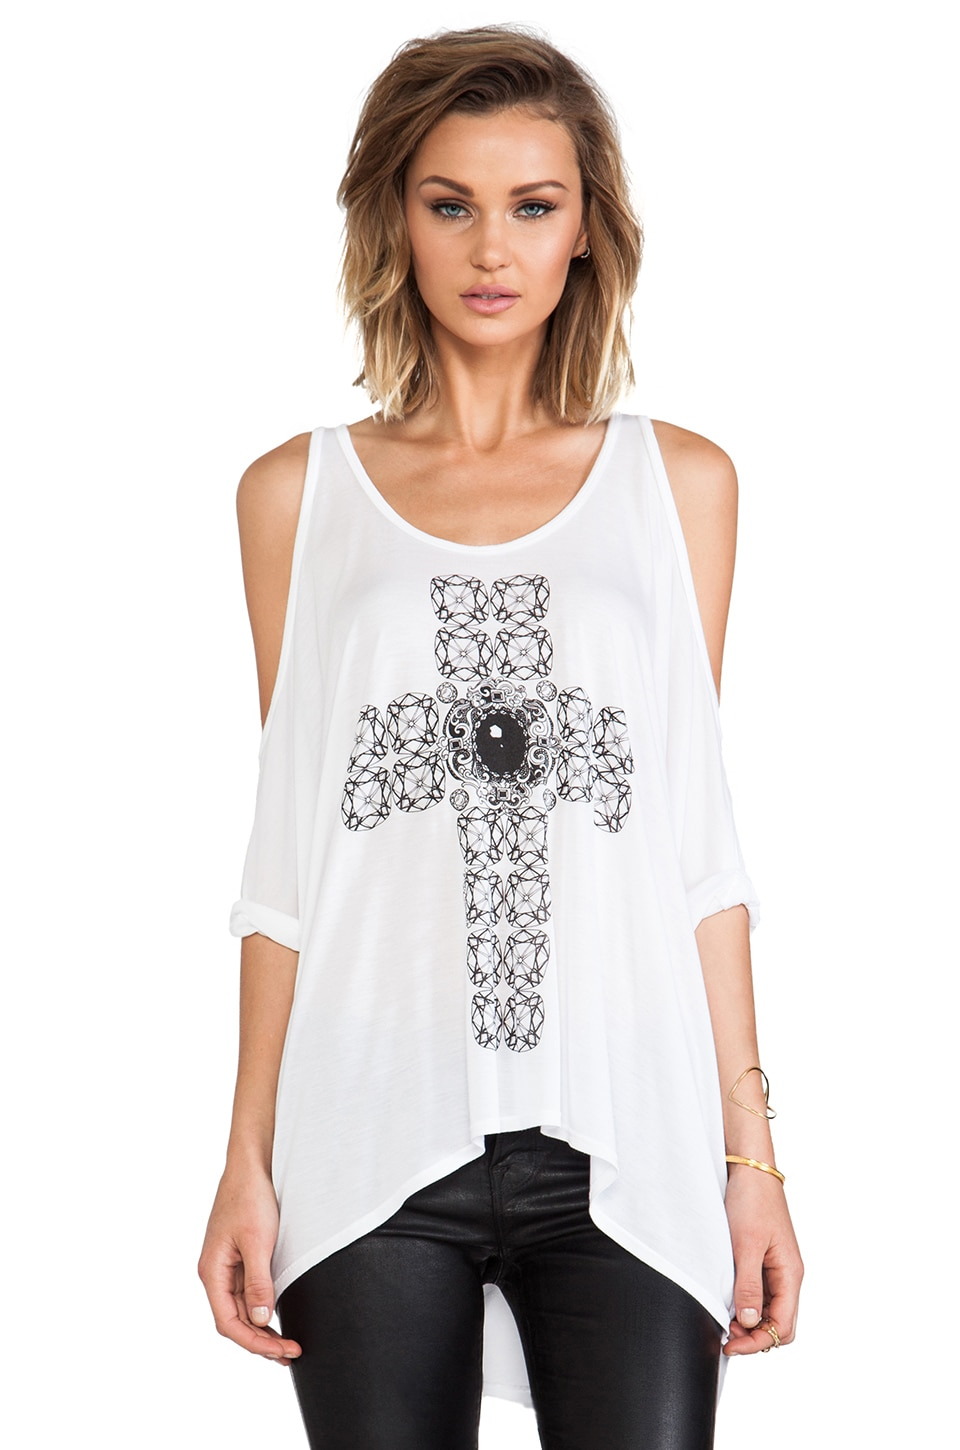 Lauren Moshi Macy Diamond Cross Open Shoulder Tee in White